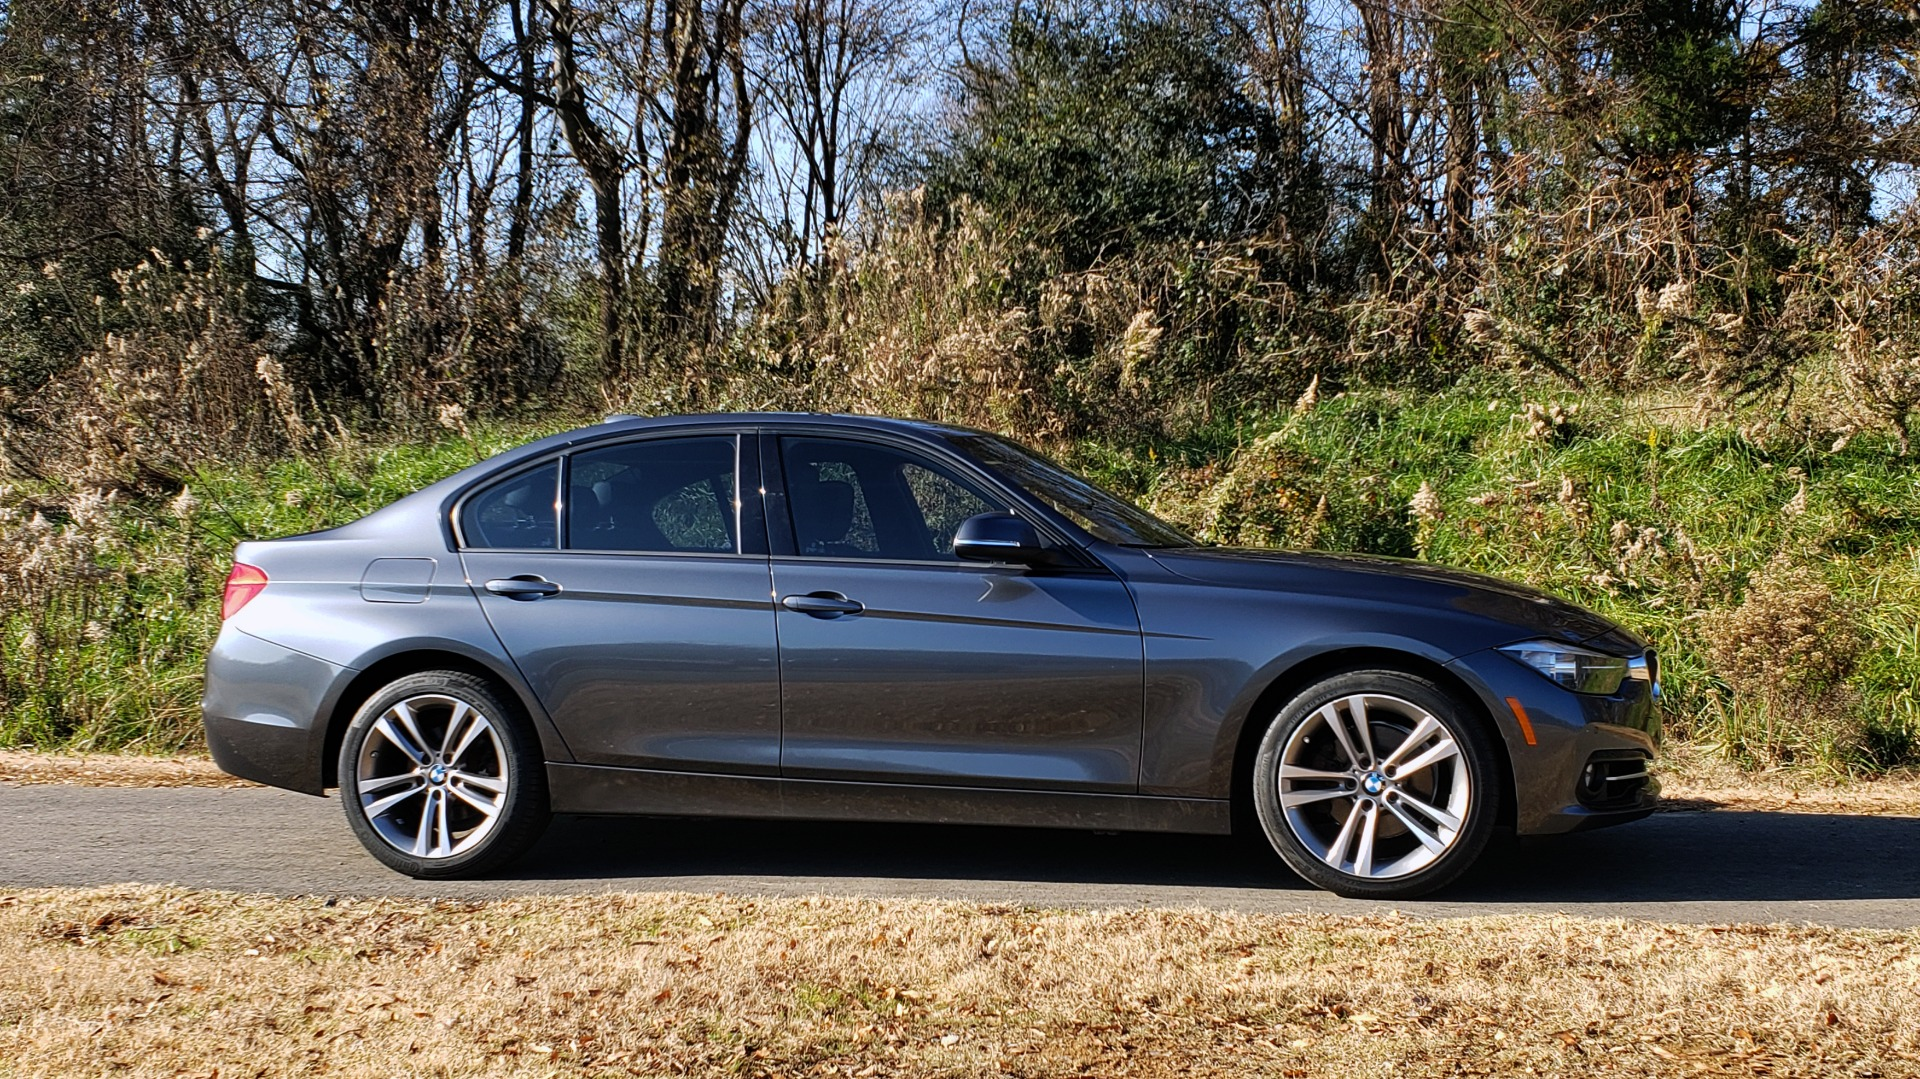 Used 2016 BMW 3 SERIES 328I / DRVR ASST / SUNROOF / PARK DIST CNTRL / REARVIEW for sale Sold at Formula Imports in Charlotte NC 28227 6